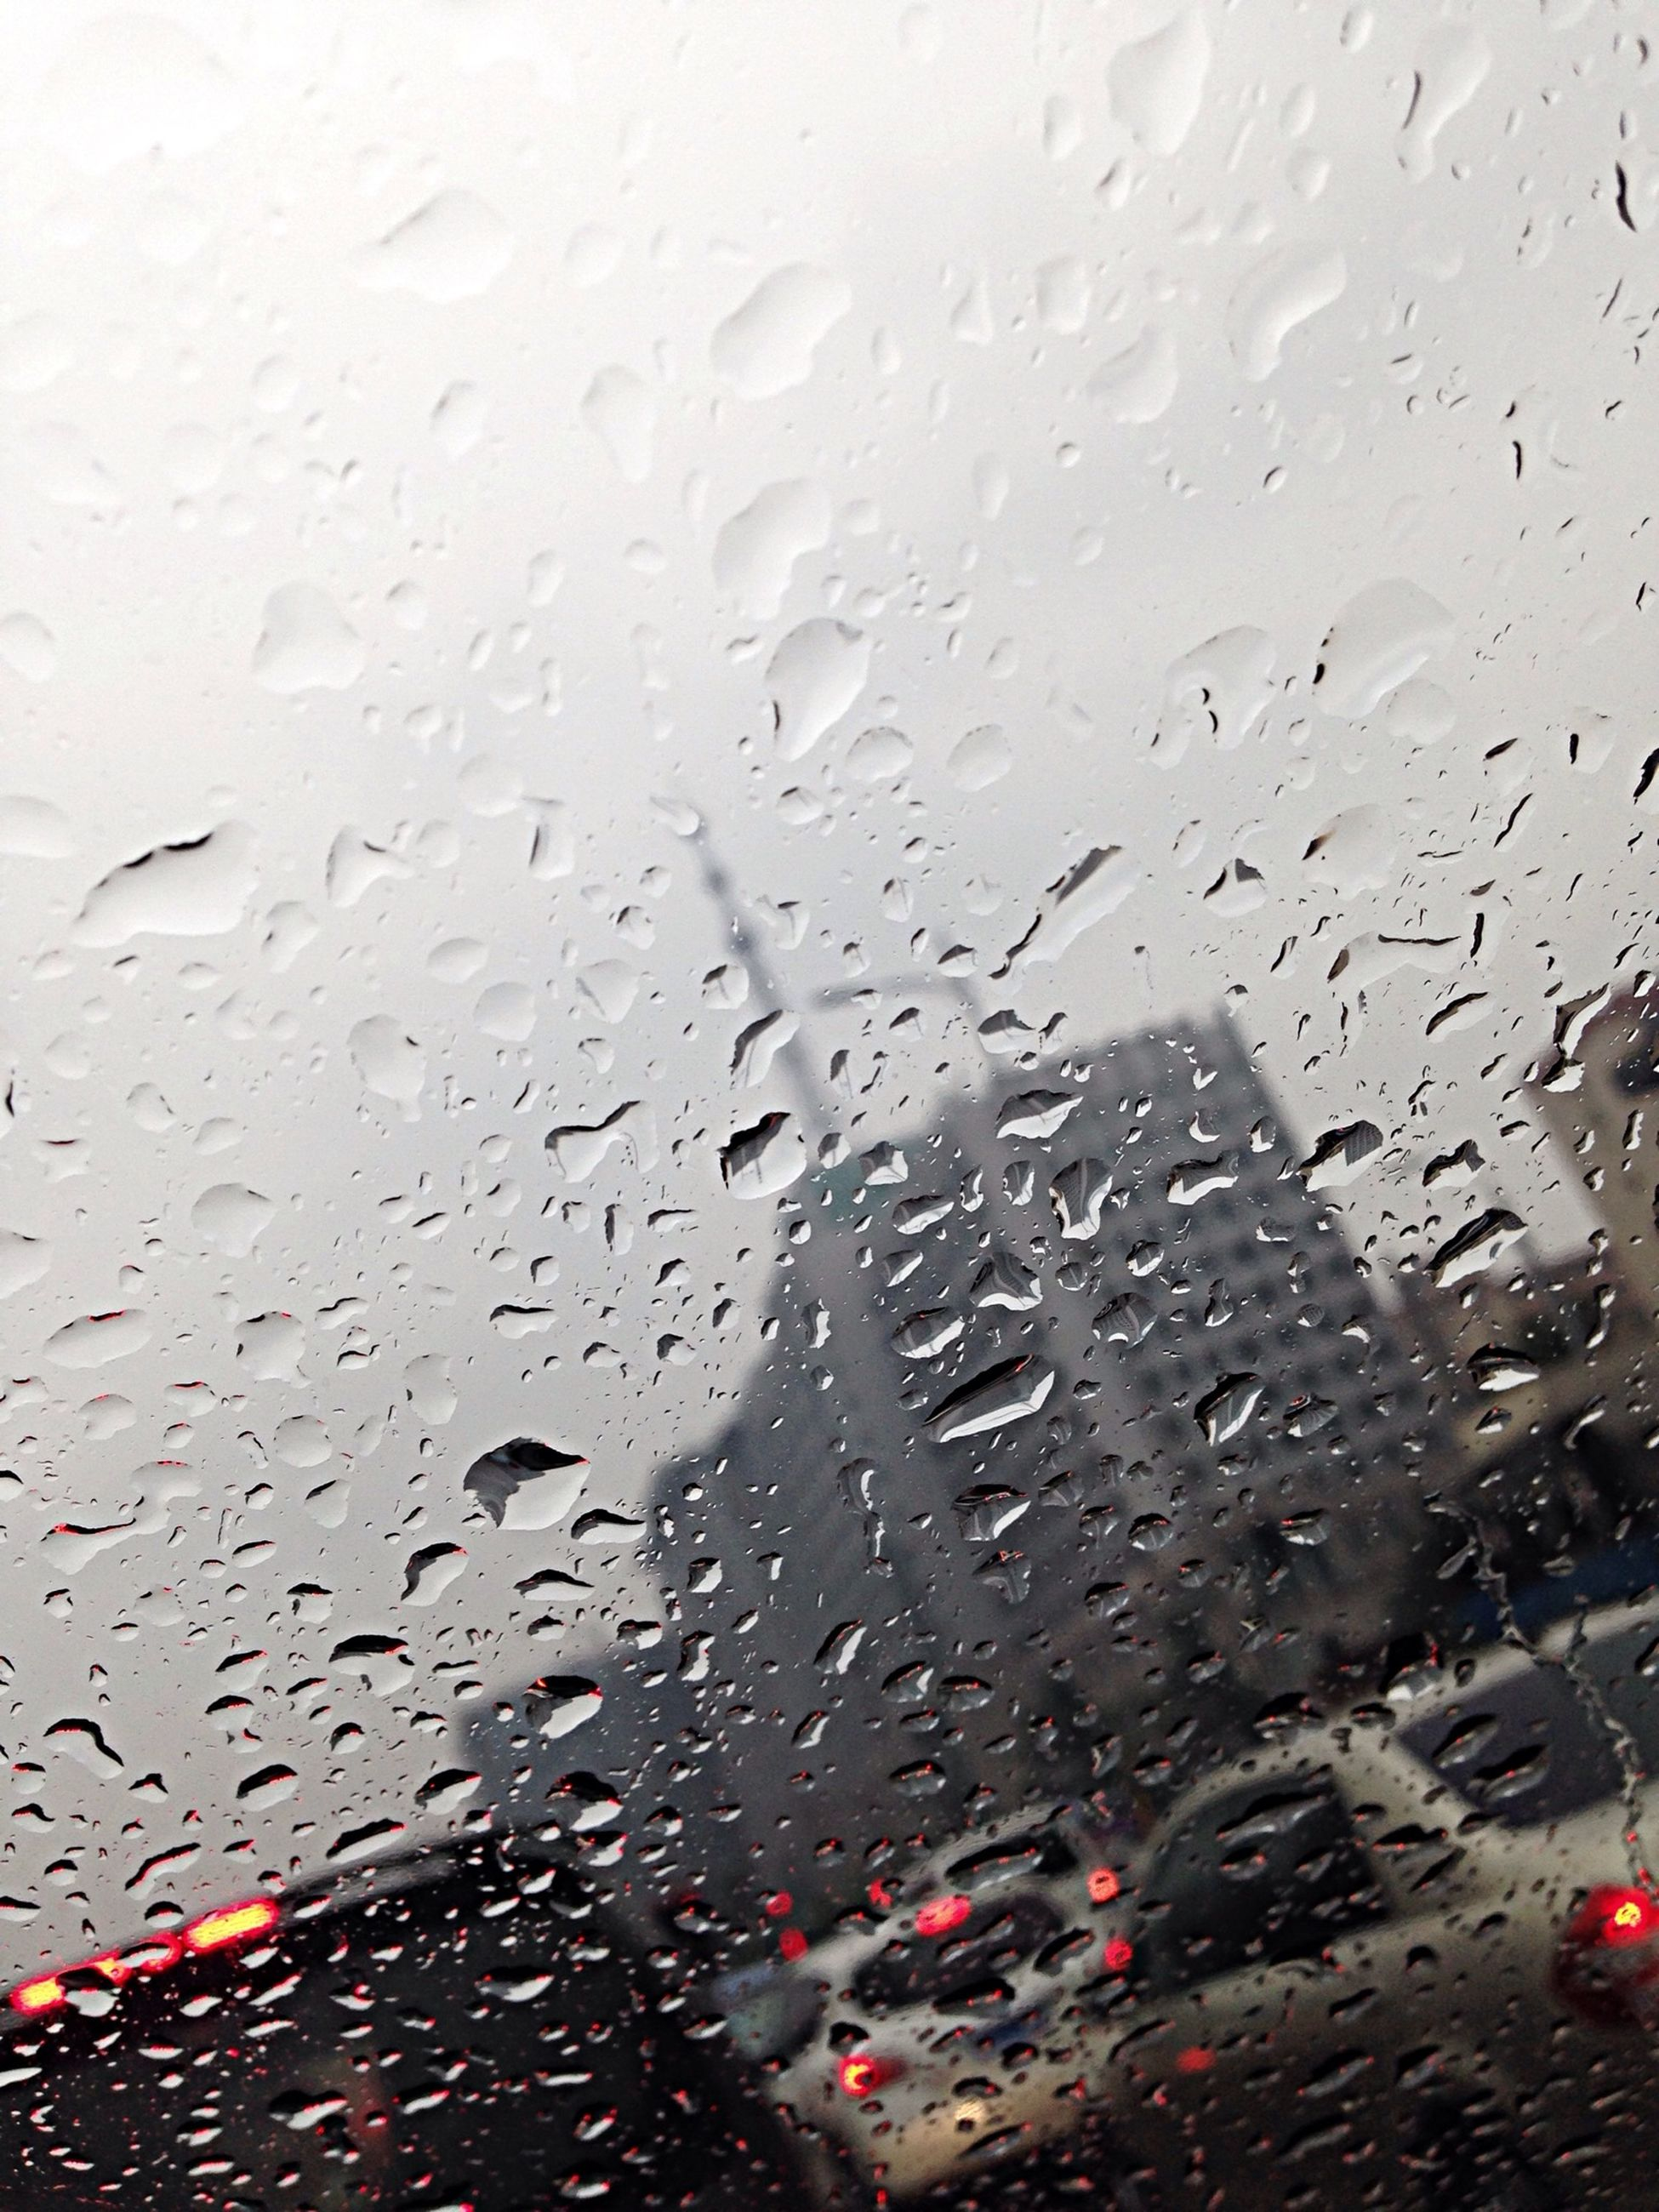 drop, wet, rain, window, water, transparent, indoors, car, transportation, glass - material, mode of transport, land vehicle, raindrop, weather, season, full frame, vehicle interior, backgrounds, glass, car interior